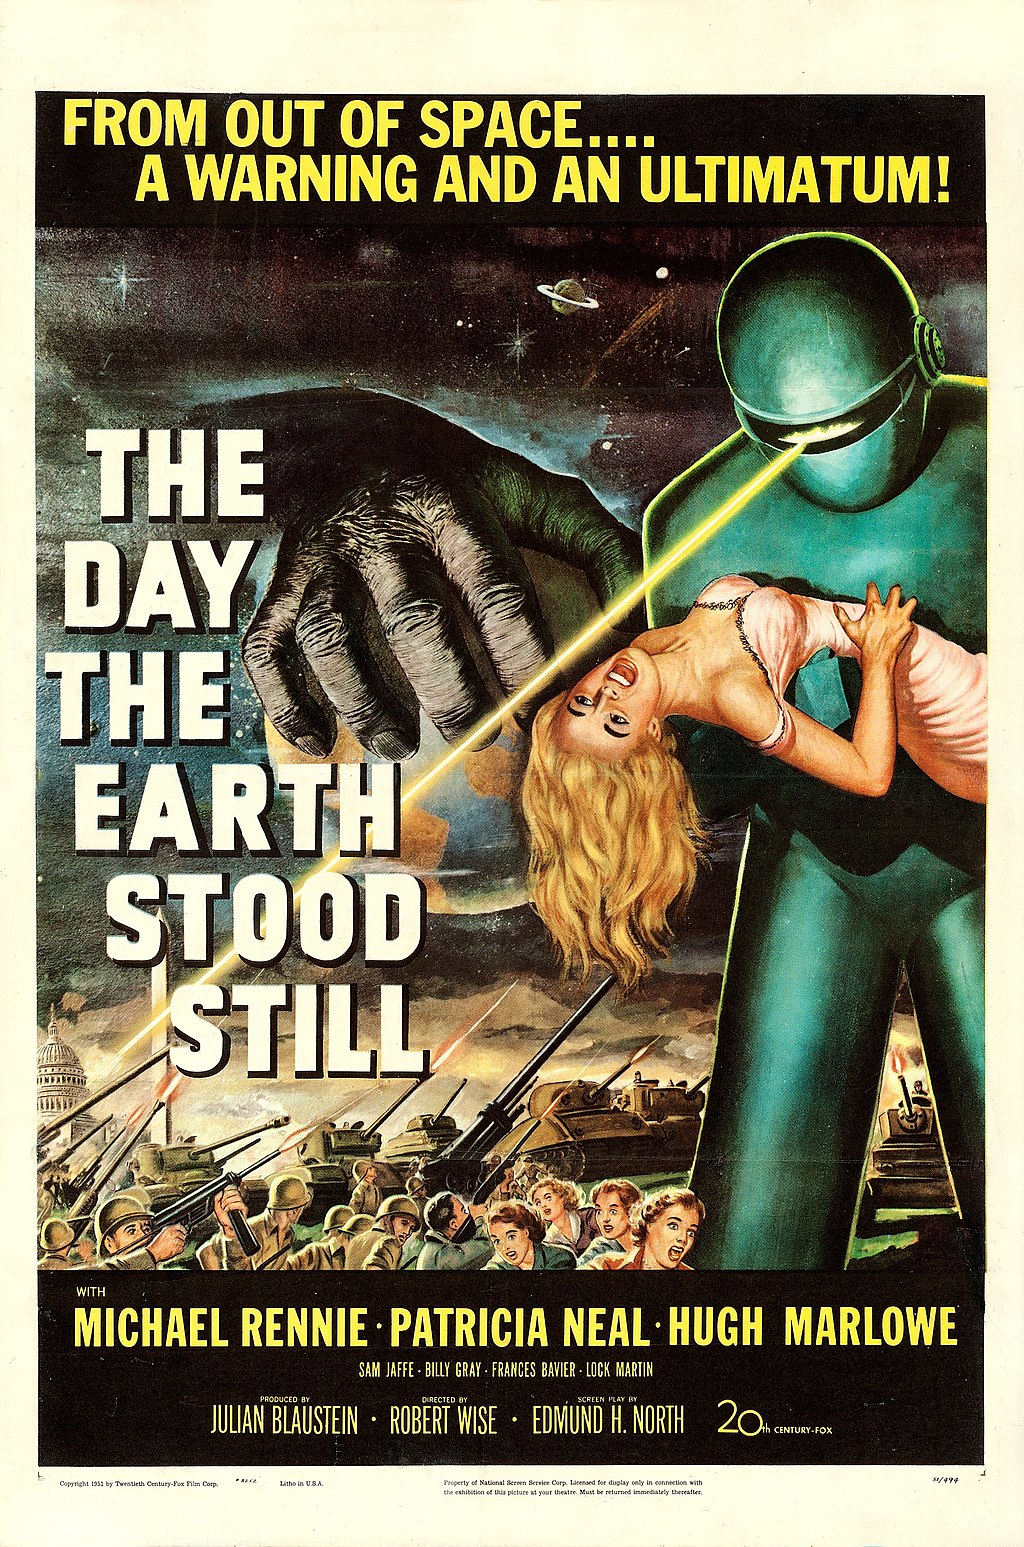 https://upload.wikimedia.org/wikipedia/commons/thumb/6/63/The_Day_the_Earth_Stood_Still_%281951_poster%29.jpeg/1024px-The_Day_the_Earth_Stood_Still_%281951_poster%29.jpeg